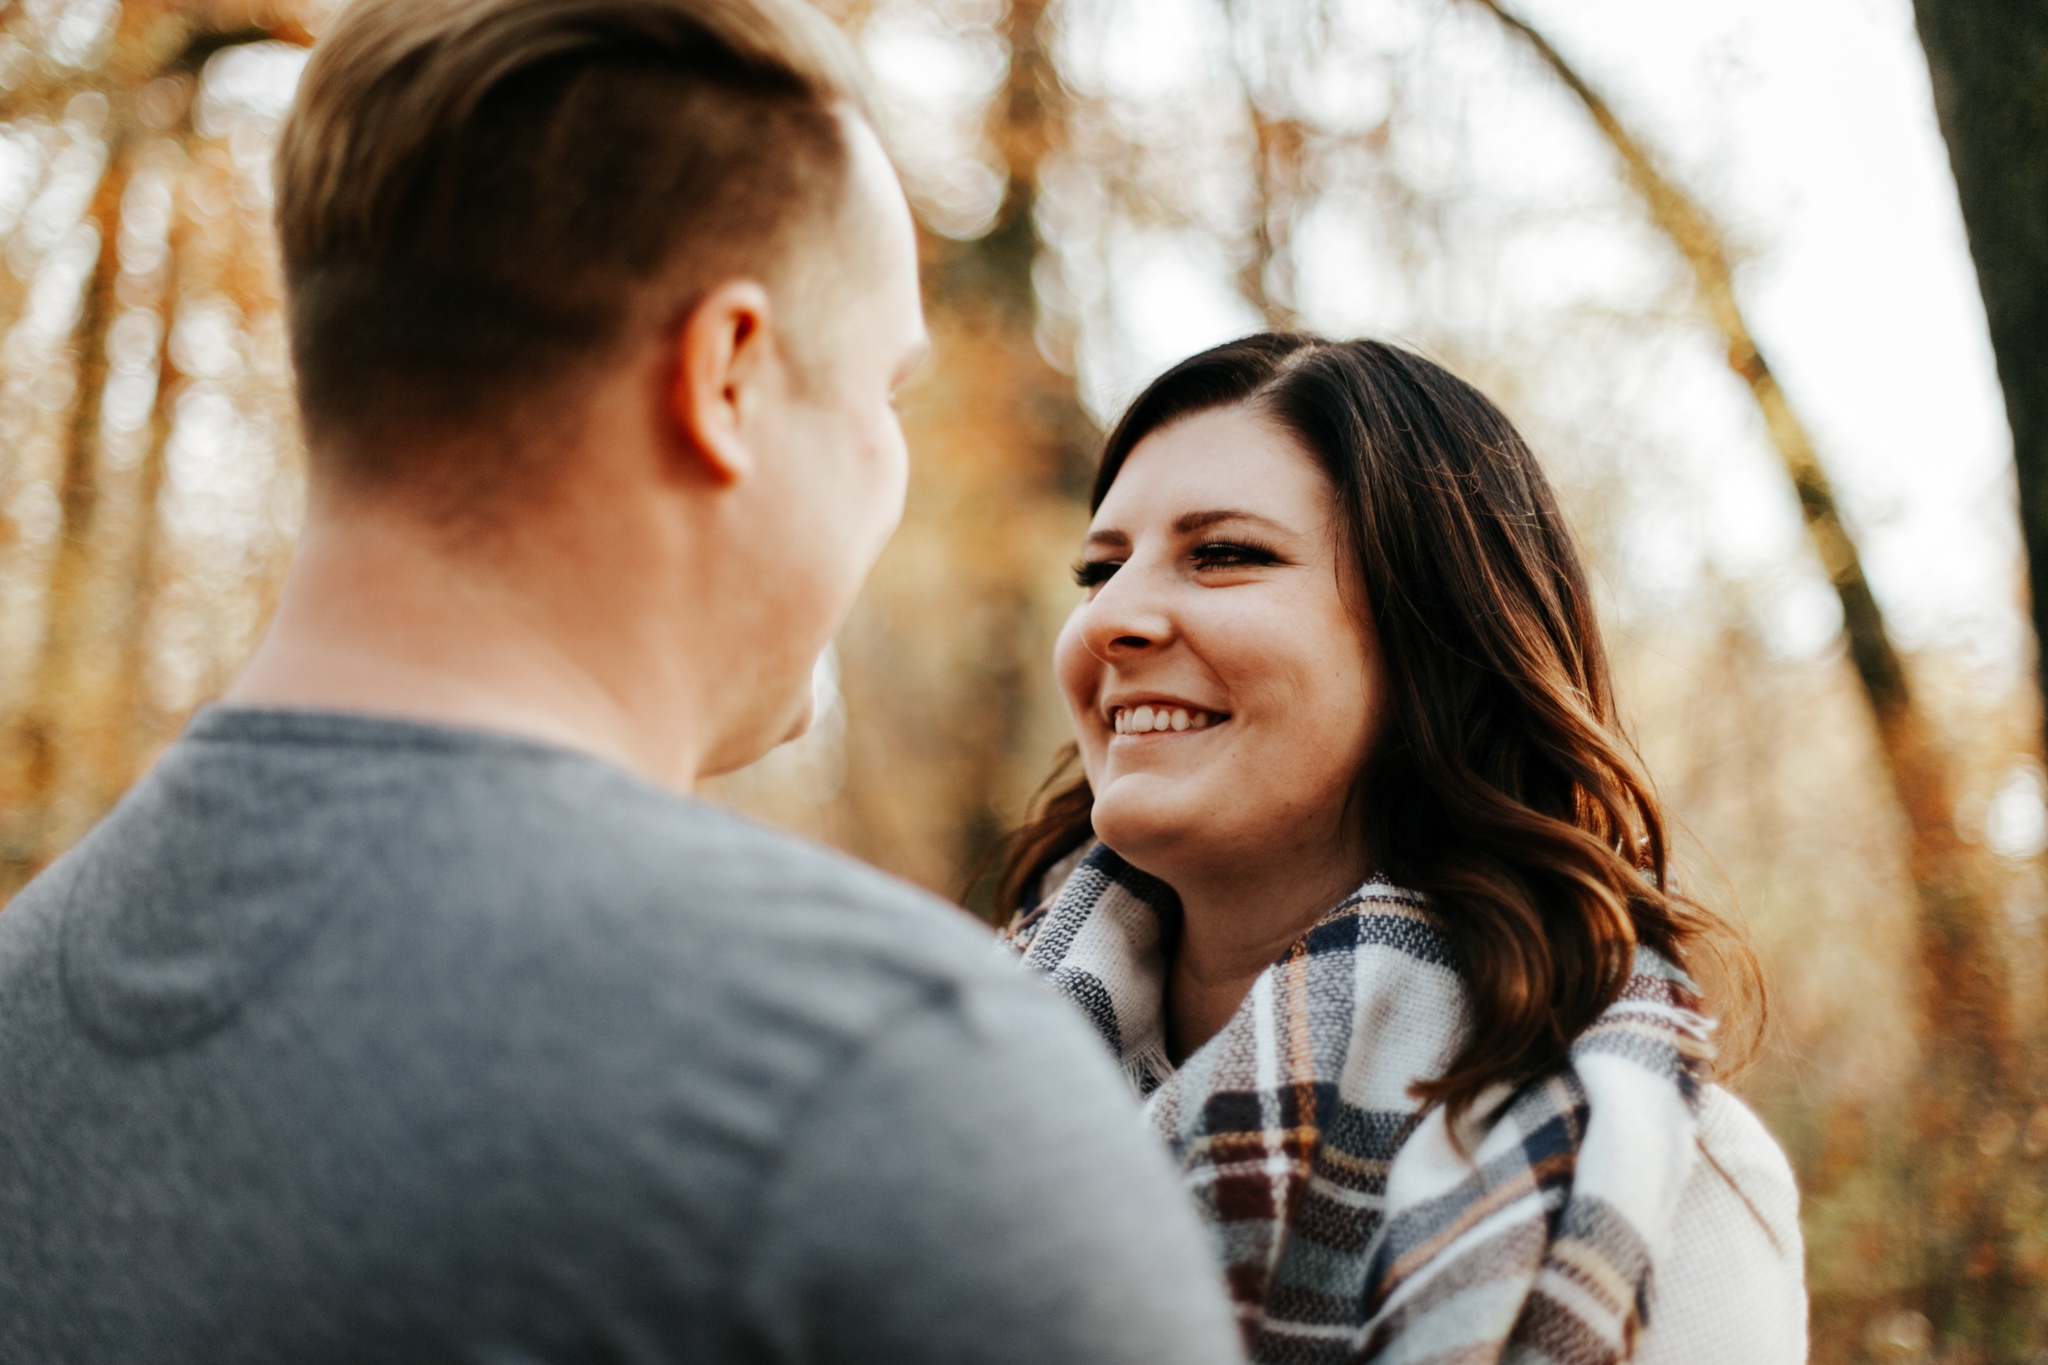 lethbridge-photographer-love-and-be-loved-photography-christy-bryan-fall-autumn-engagement-photo-image-picture-6.jpg